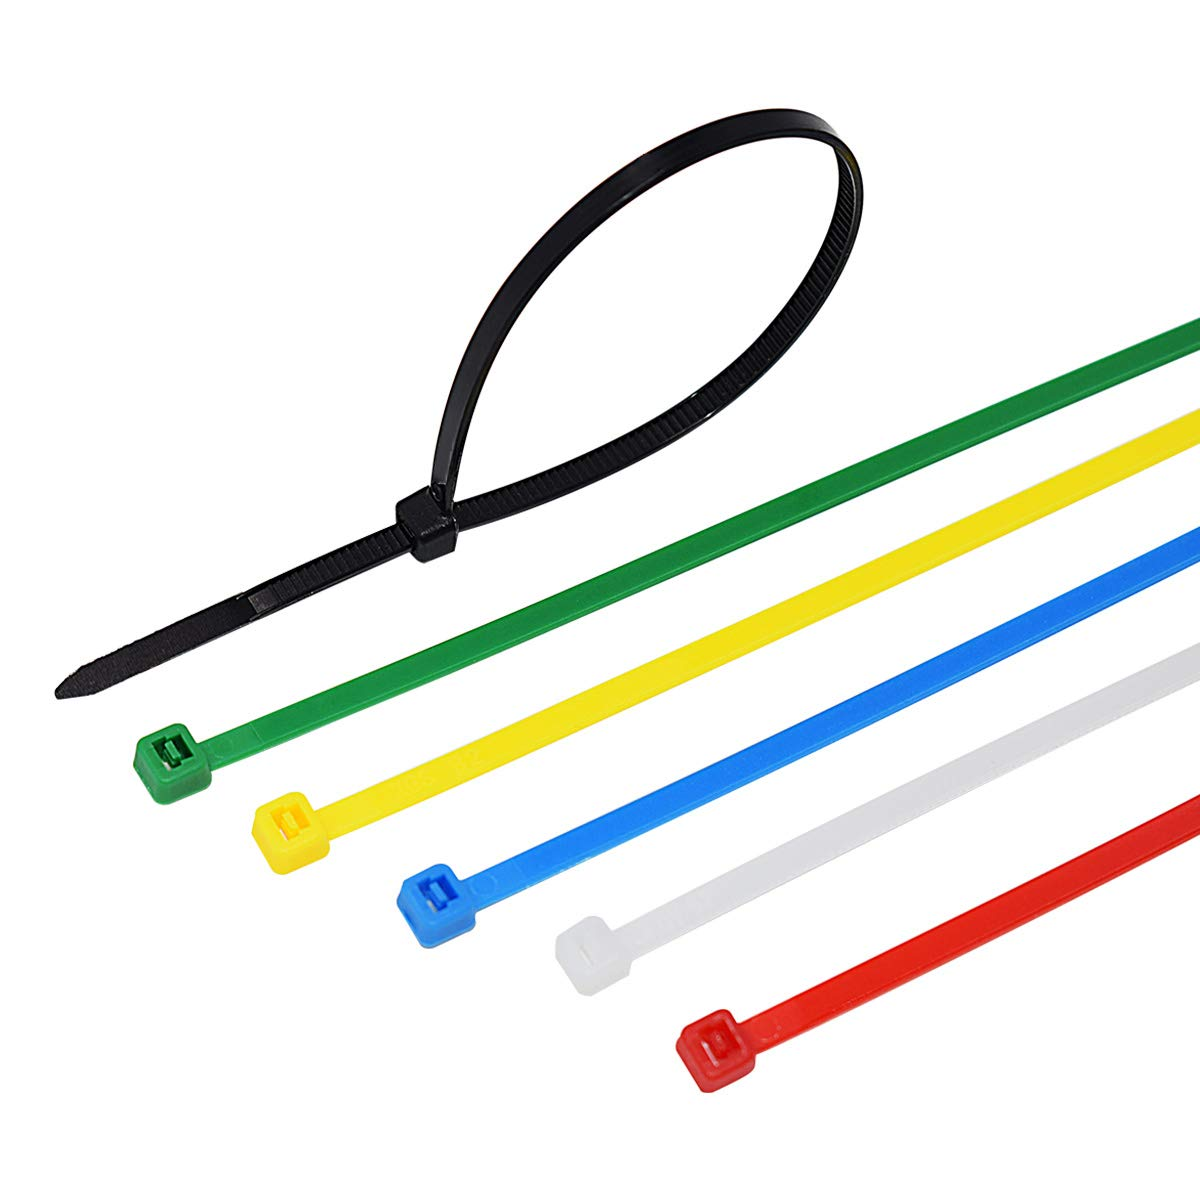 YESTOO 8 Inch Heavy Duty Self Locking Nylon Cable Zip Ties 150 Pieces Six Color